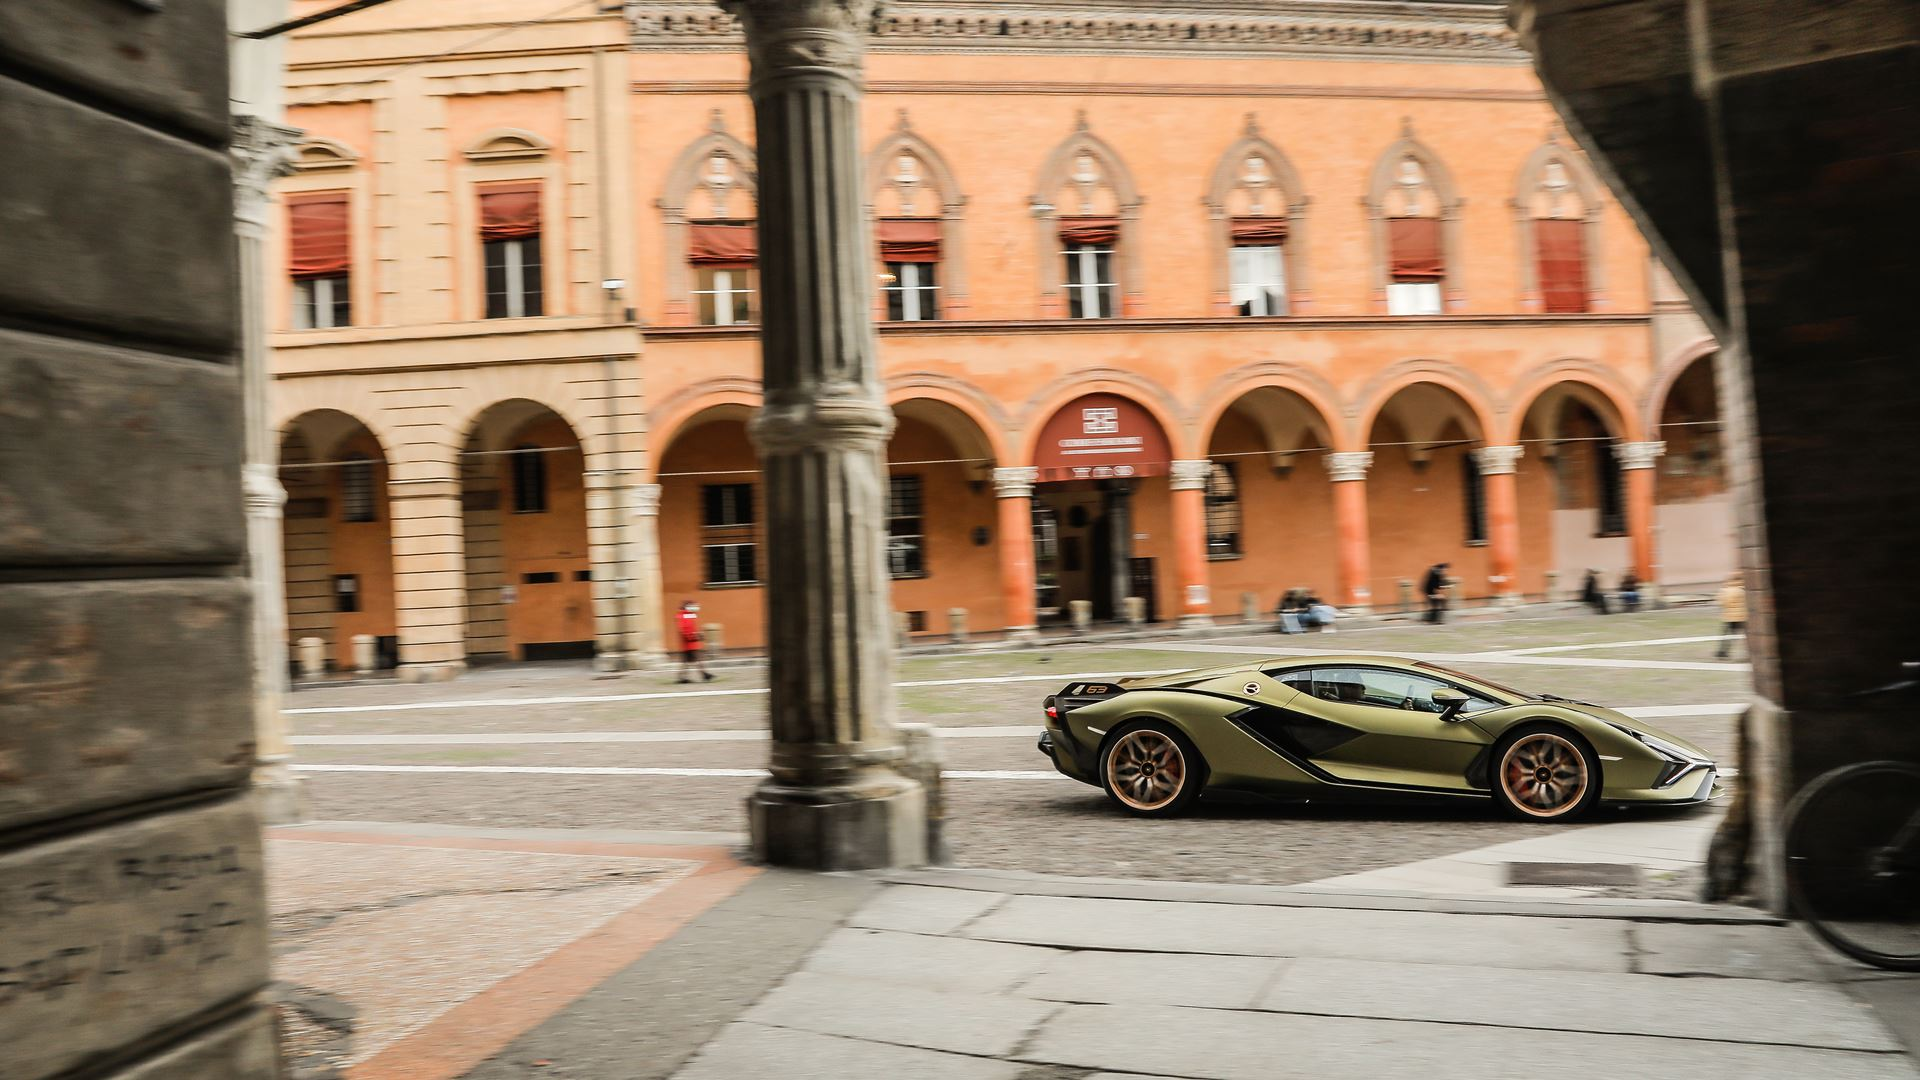 Lamborghini Sián pays homage to the porticoes of Bologna. Following the UNESCO designation, the super sports car from Sant'Agata travels the streets of Bologna's porticoes - Image 3